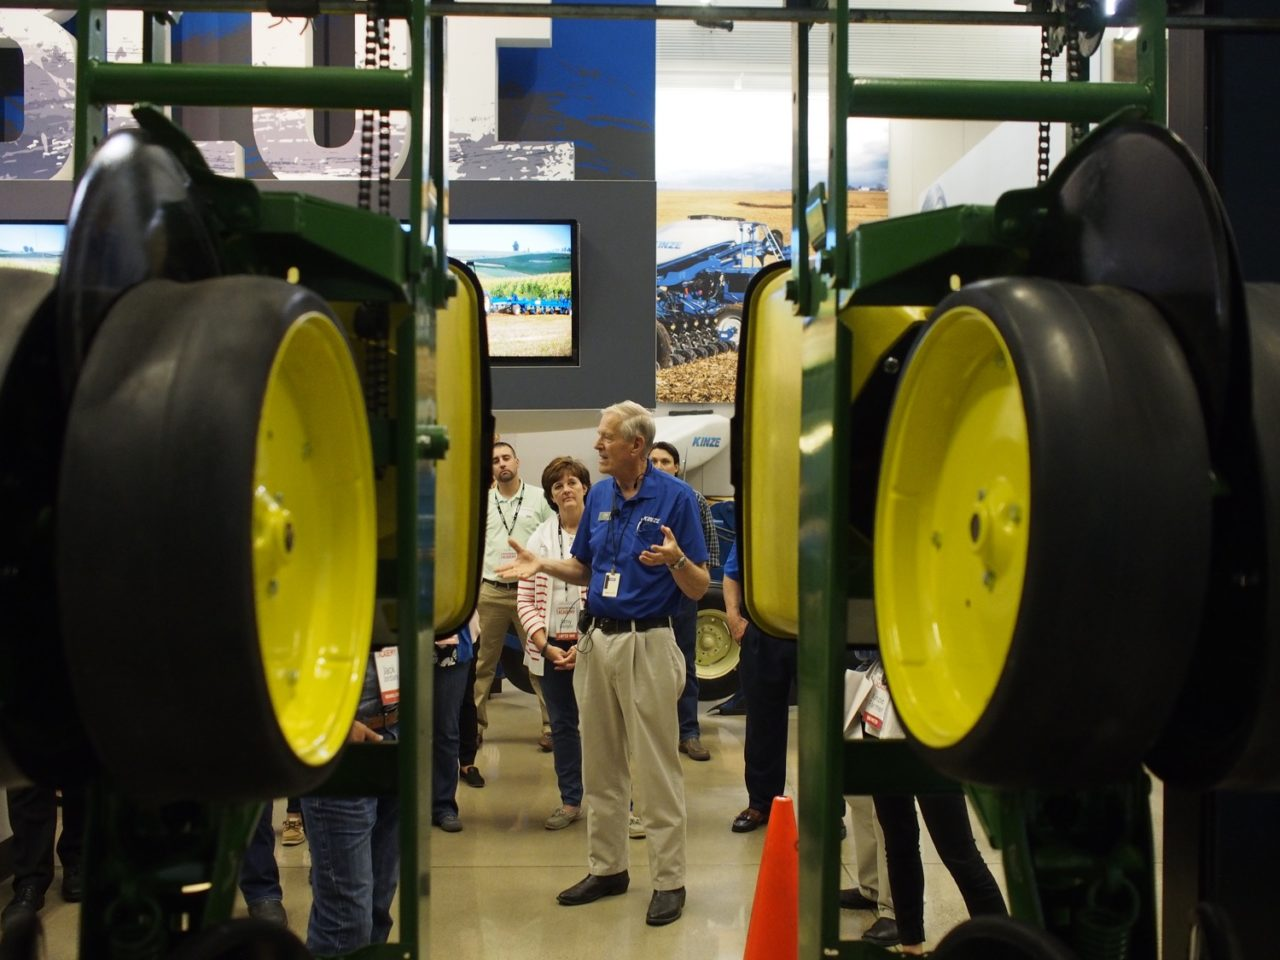 A docent stands between two rows of agriculture equipment and talks to a crowd in the Kinze Innovation Center.